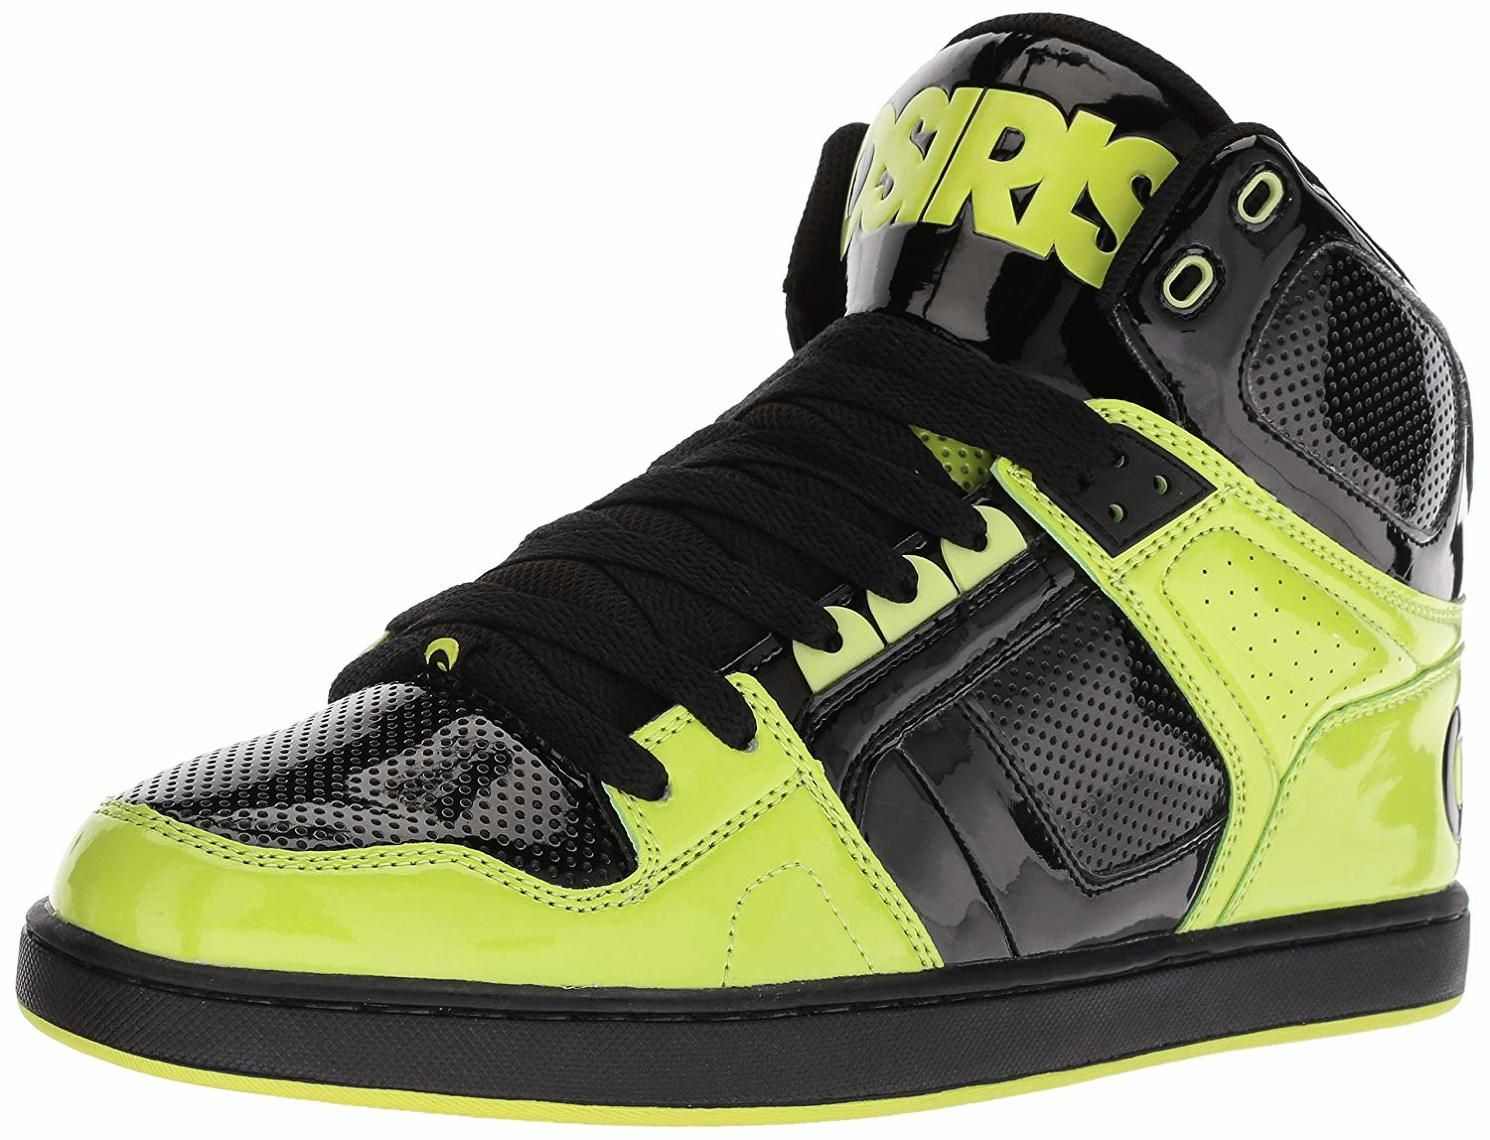 e09dcb5ea94 Details about Osiris Men's NYC 83 CLK Skate Shoe in 2019 | Osiris ...